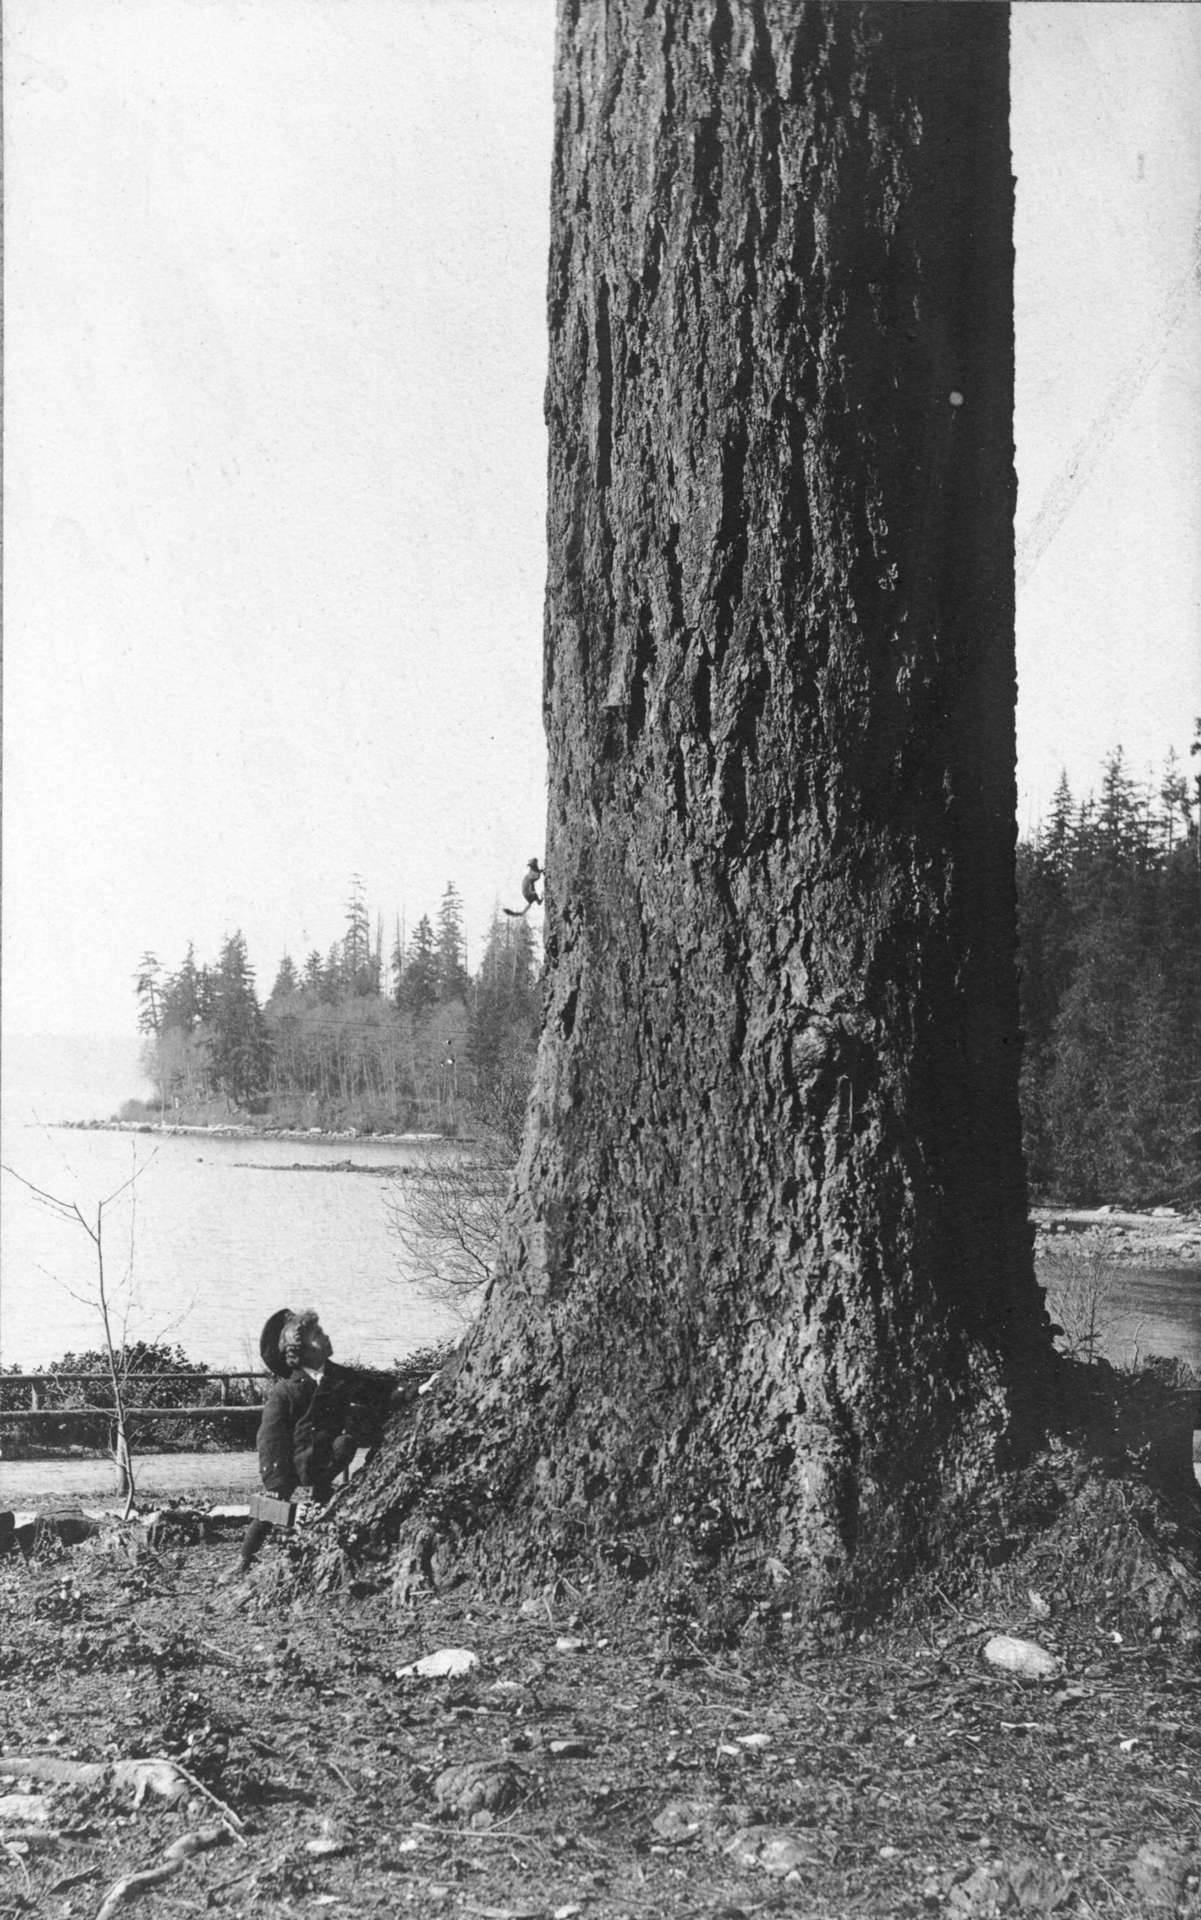 Stanley Park, ca. 1902 Harold Timms watching a squirrel run up a tree. Note that it's probably a red squirrel; the grey squirrels that now overrun the park are descended from eight pairs of grey squirrels that were a gift from Central Park in New York in 1909. Source: Photo by Philip Timms, City of Vancouver Archives #677-664